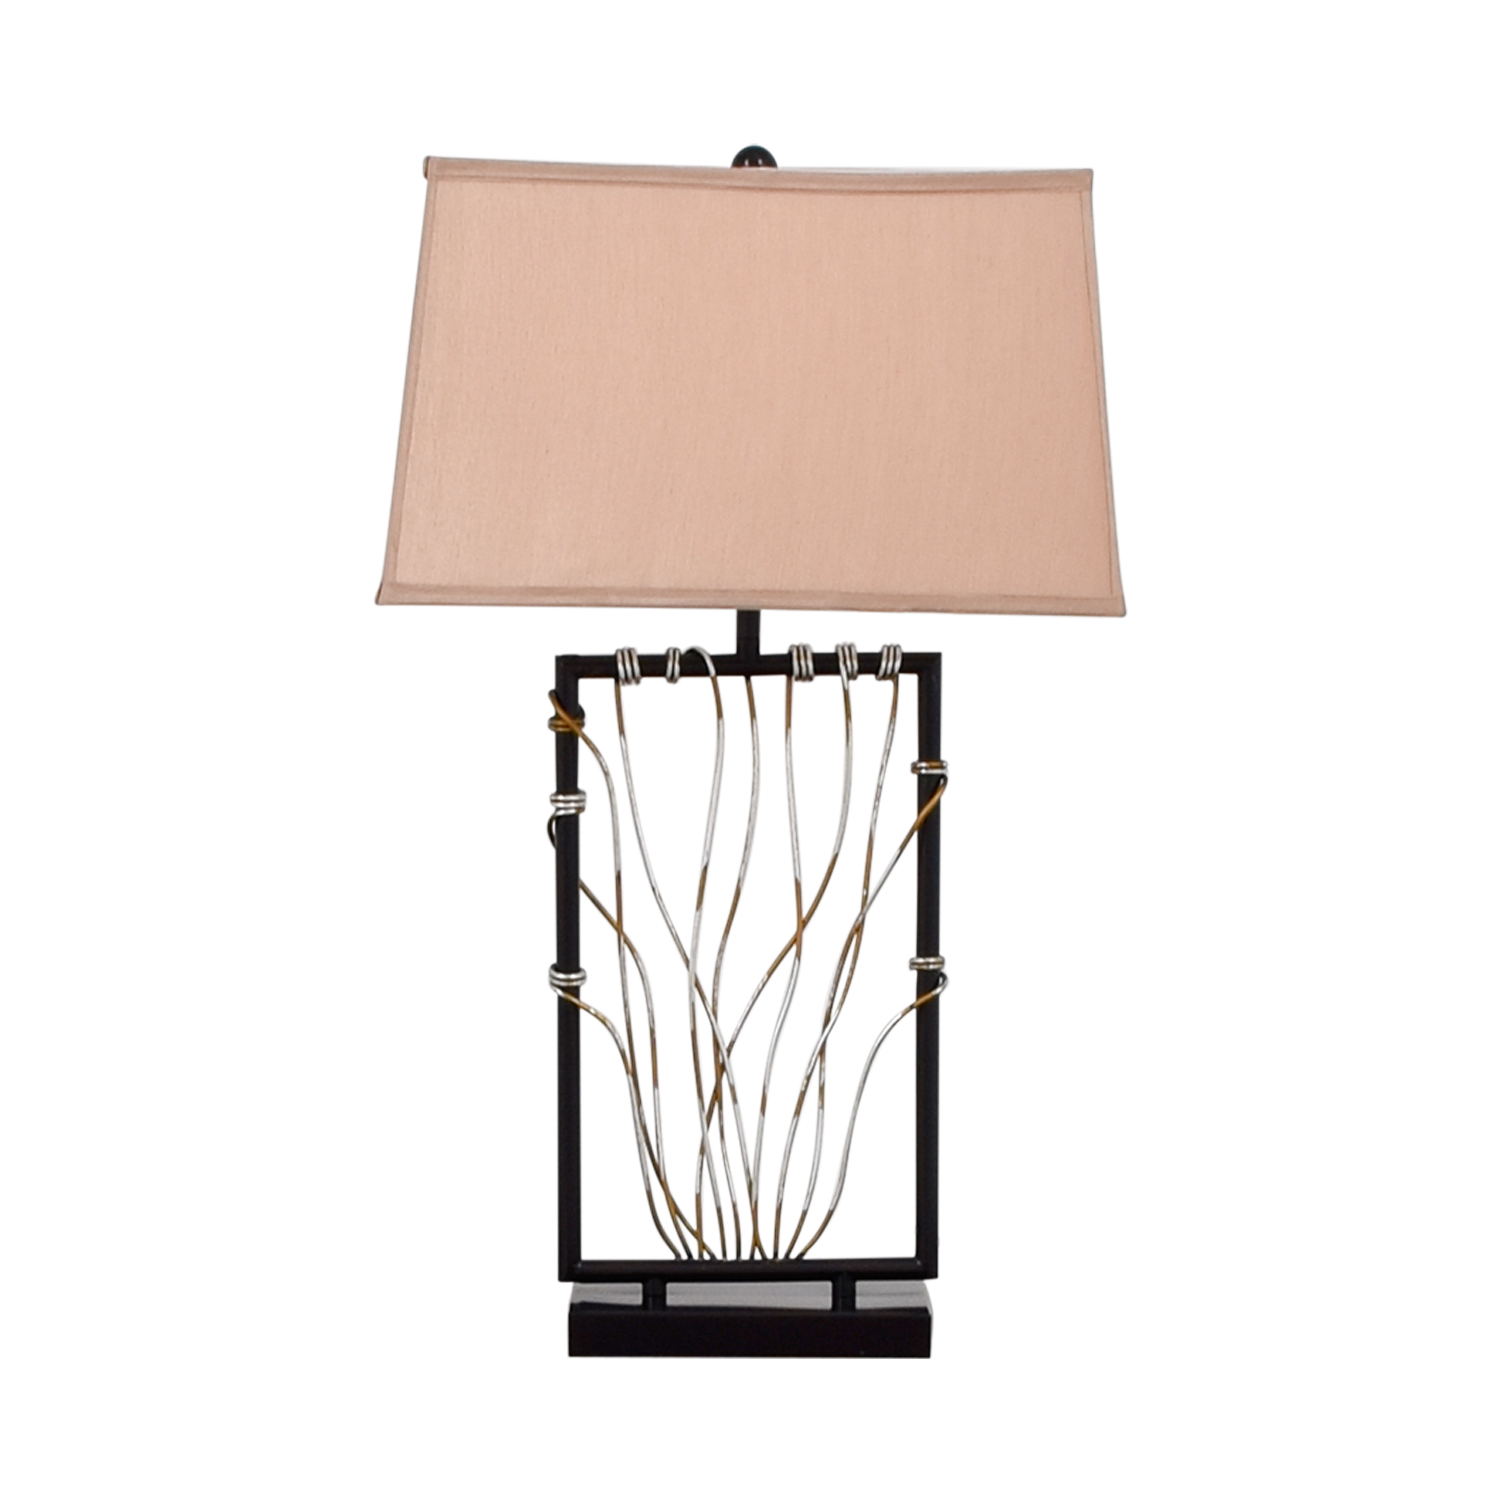 Raymour & Flanigan Raymour & Flanigan Wire Lamp discount